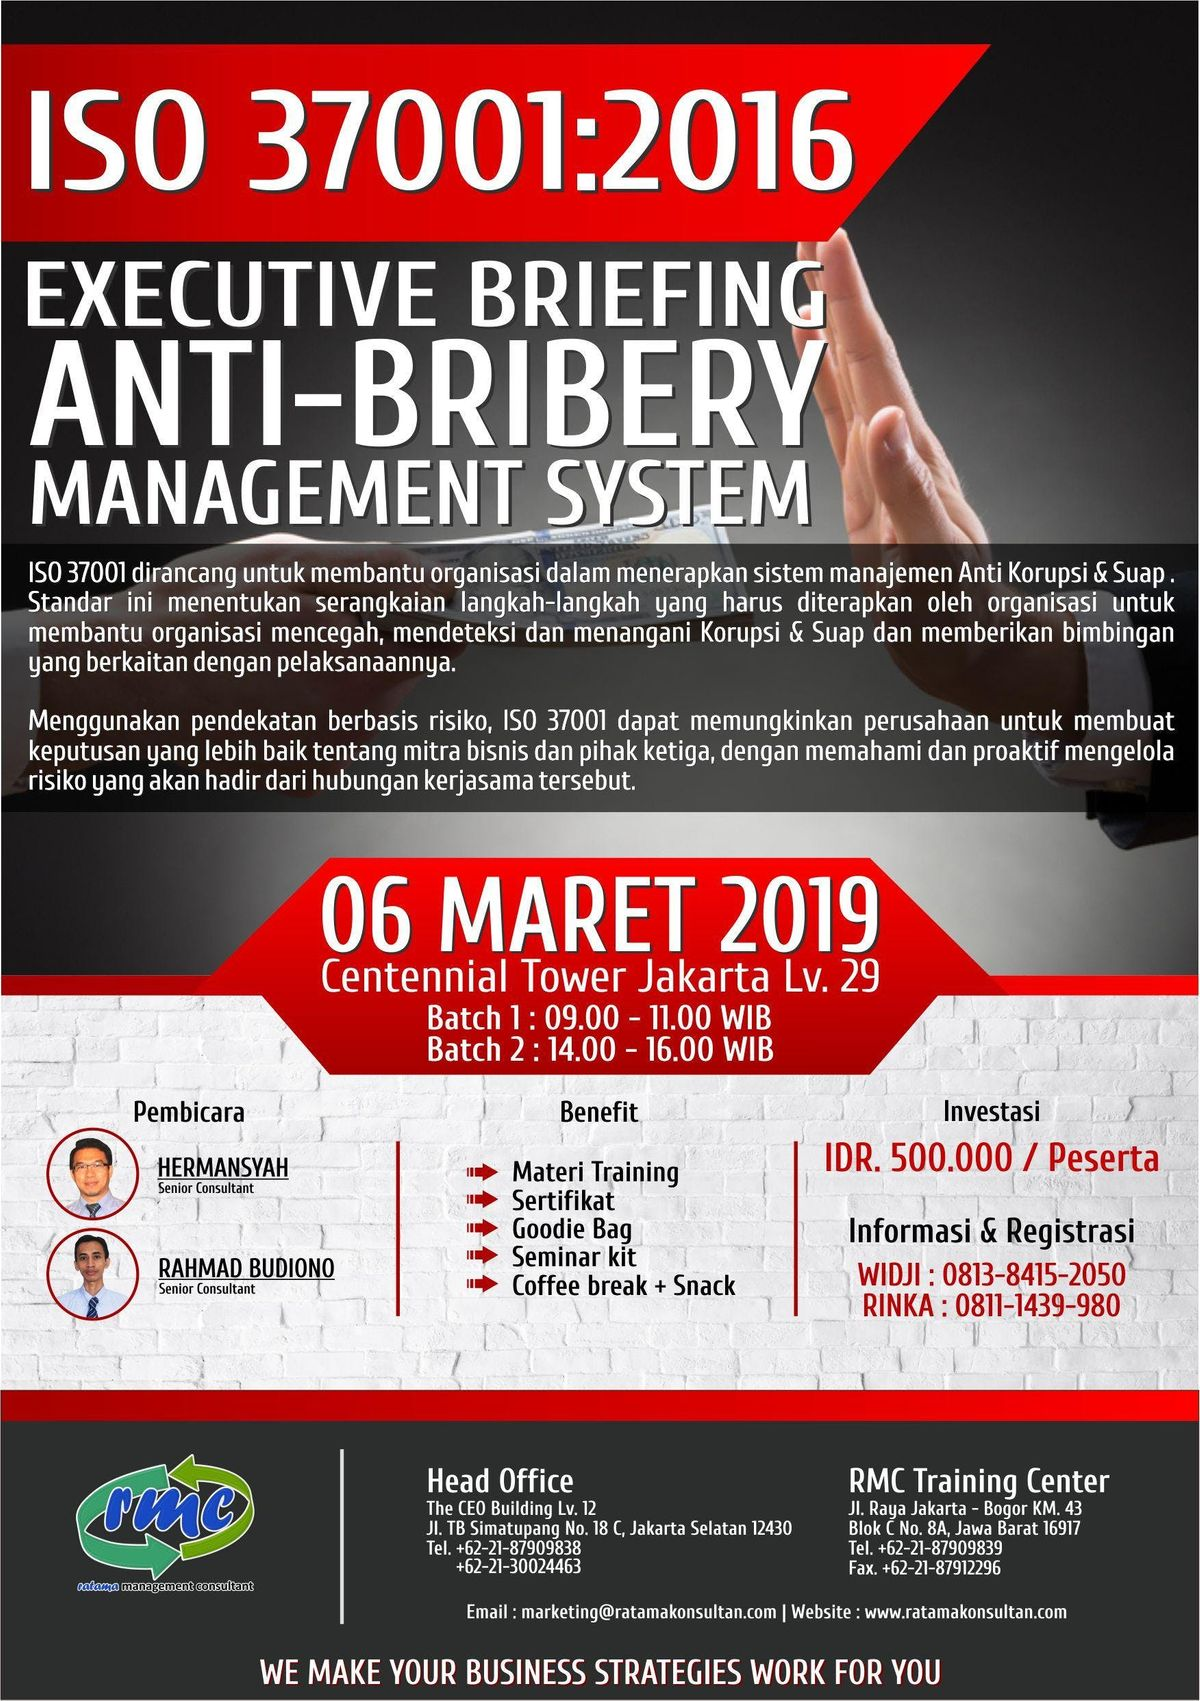 Executive Briefing Anti-Bribery Management System ISO 370012016